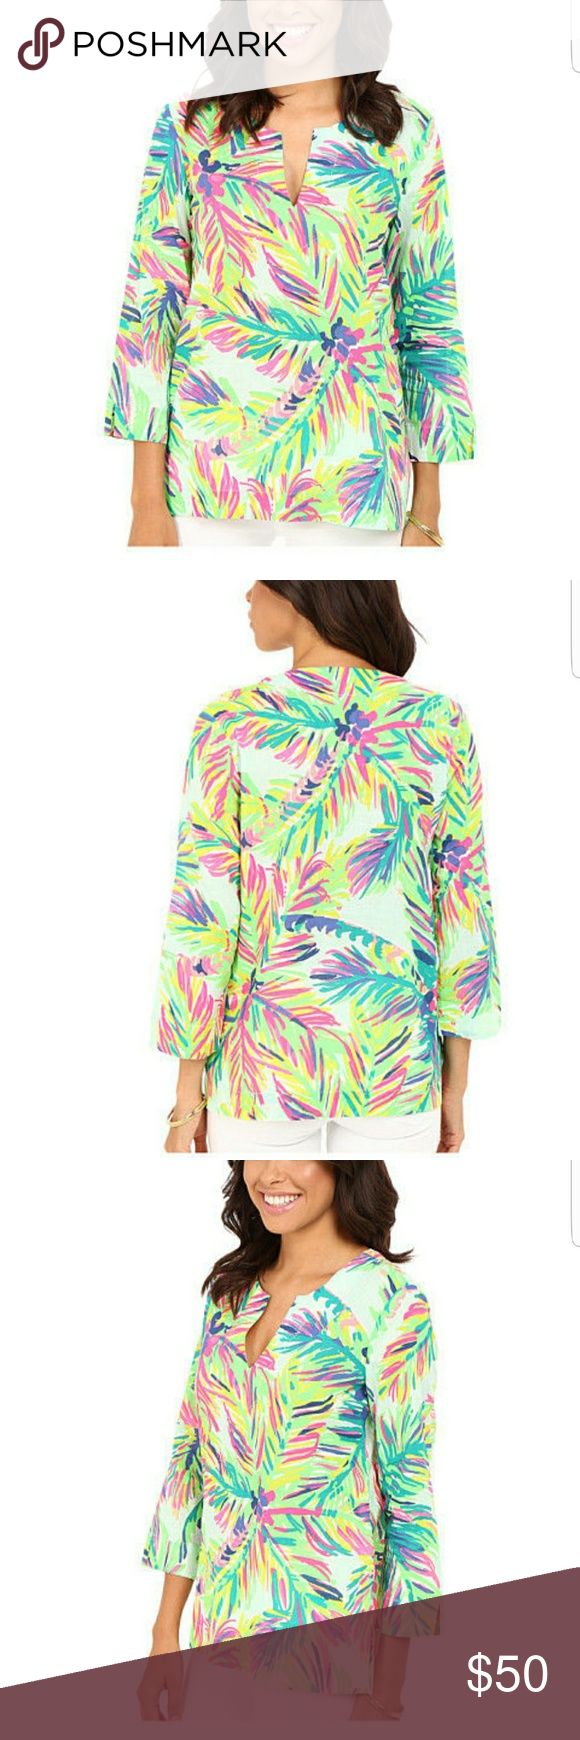 Lily Pulitzer Amelia Island Tunic NWT The print is called Island Time.  New with tags. Smoke free home. Lilly Pulitzer Tops